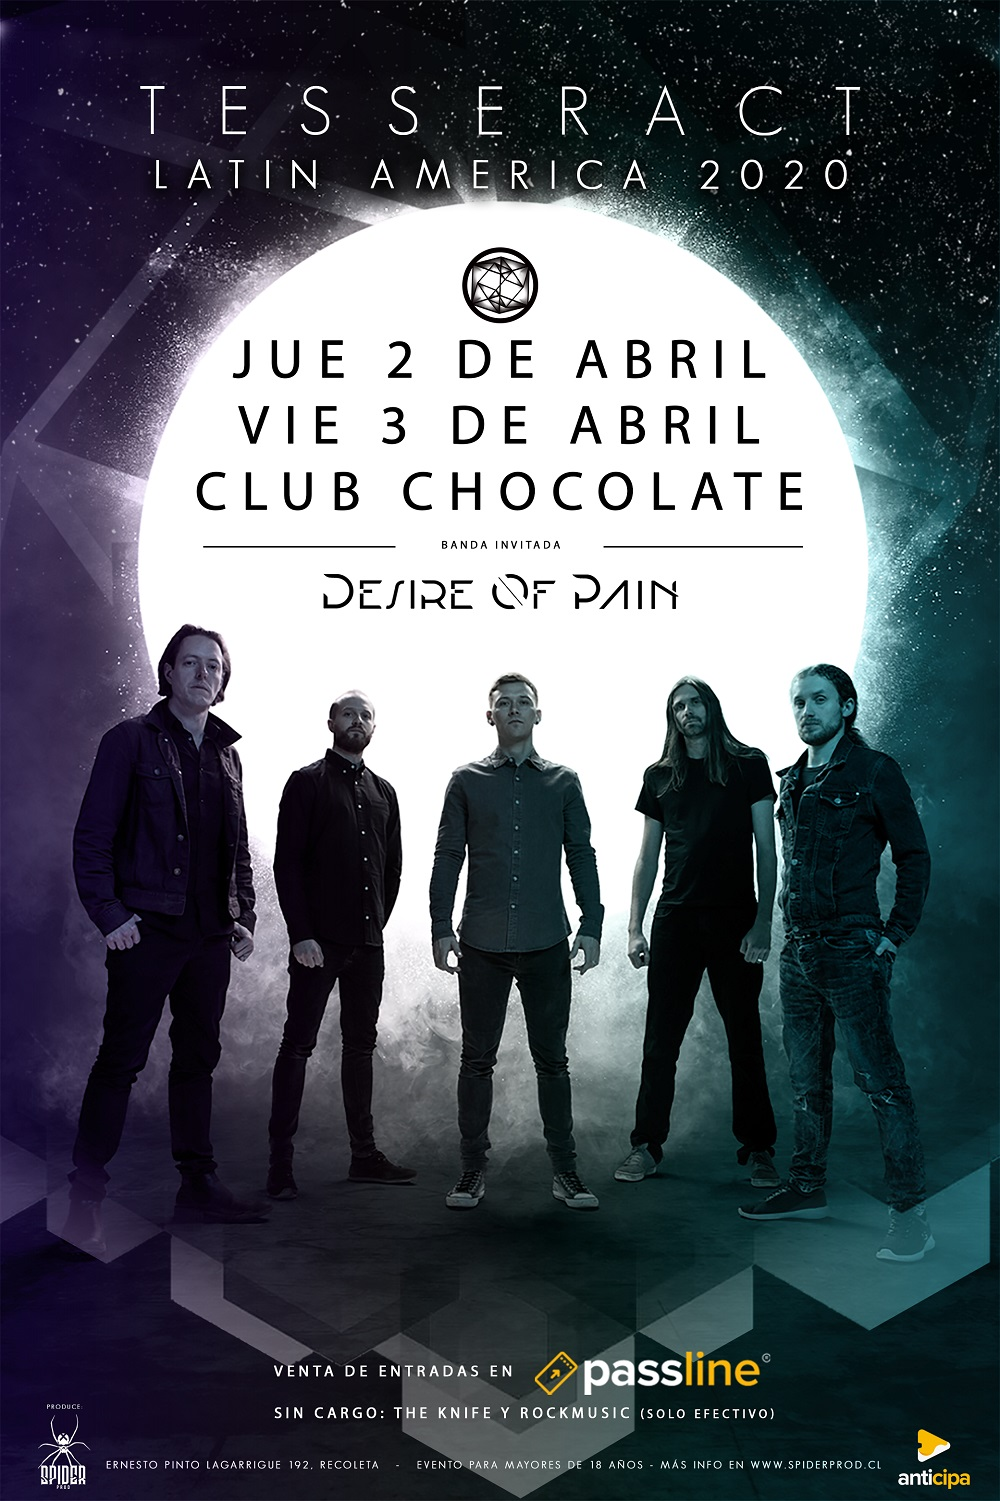 Desire of Pain es la banda invitada a los shows de TesseracT en Chile